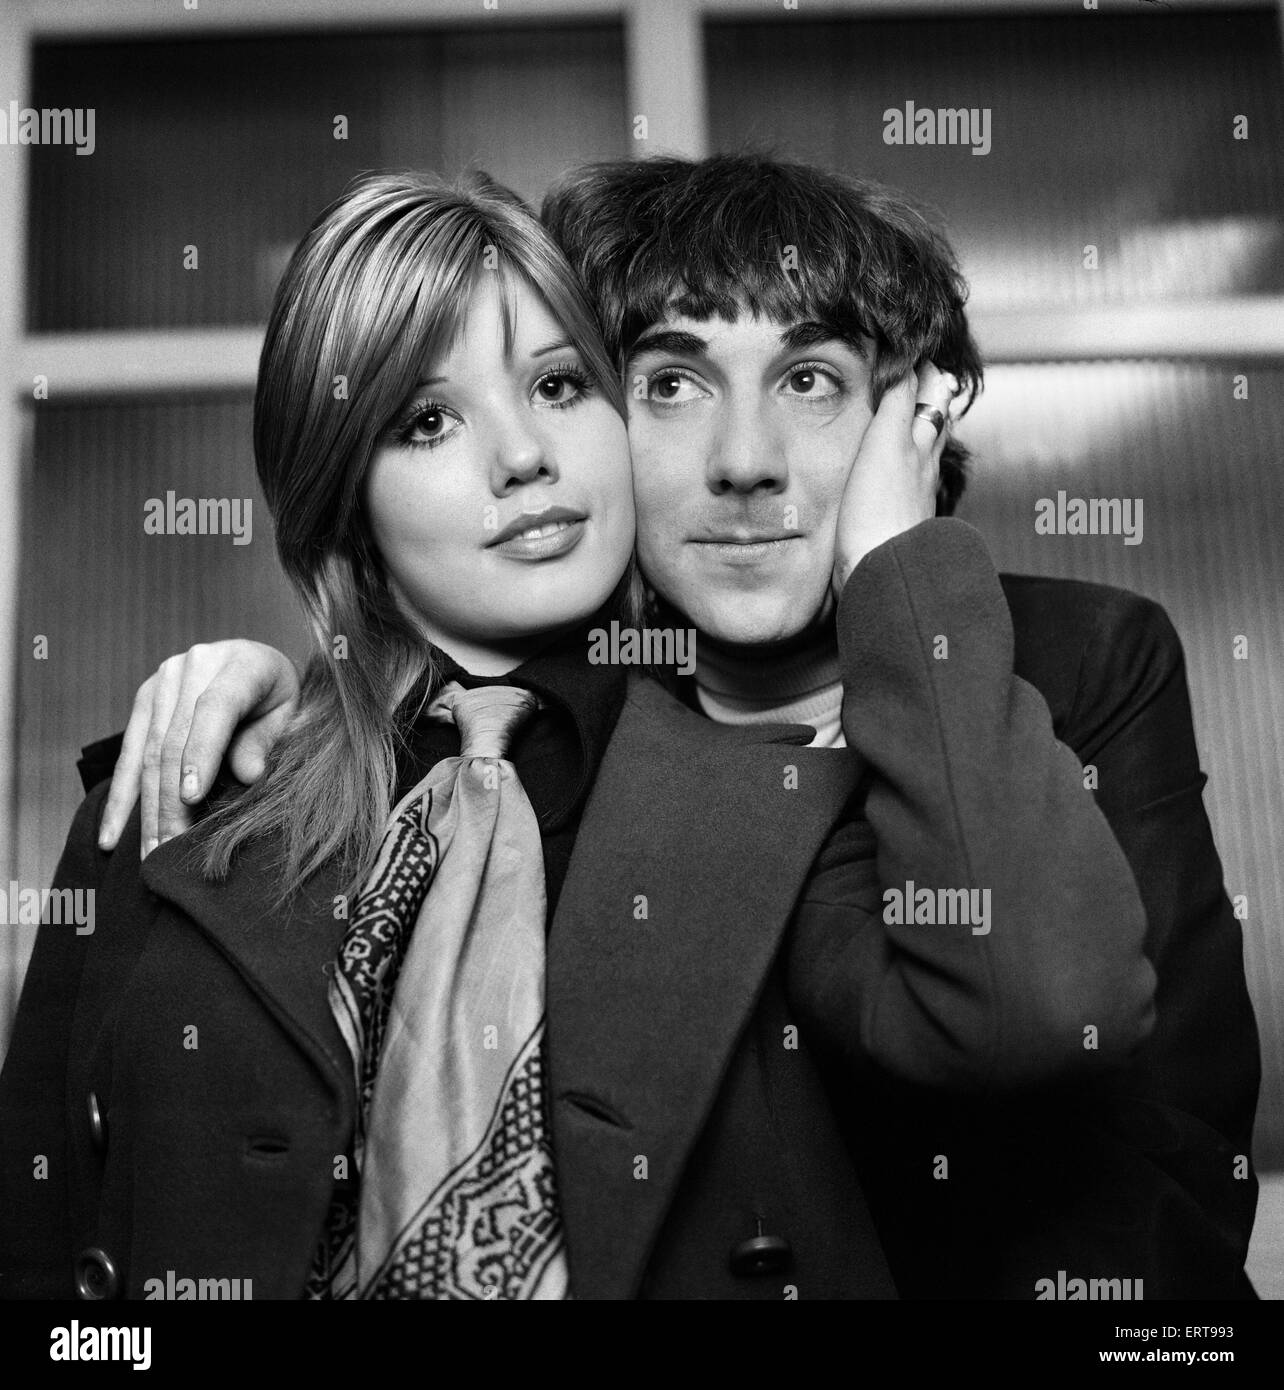 Keith Moon, drummer of British rock group The Who, pictured with his wife Kim. 24th March 1969. - Stock Image